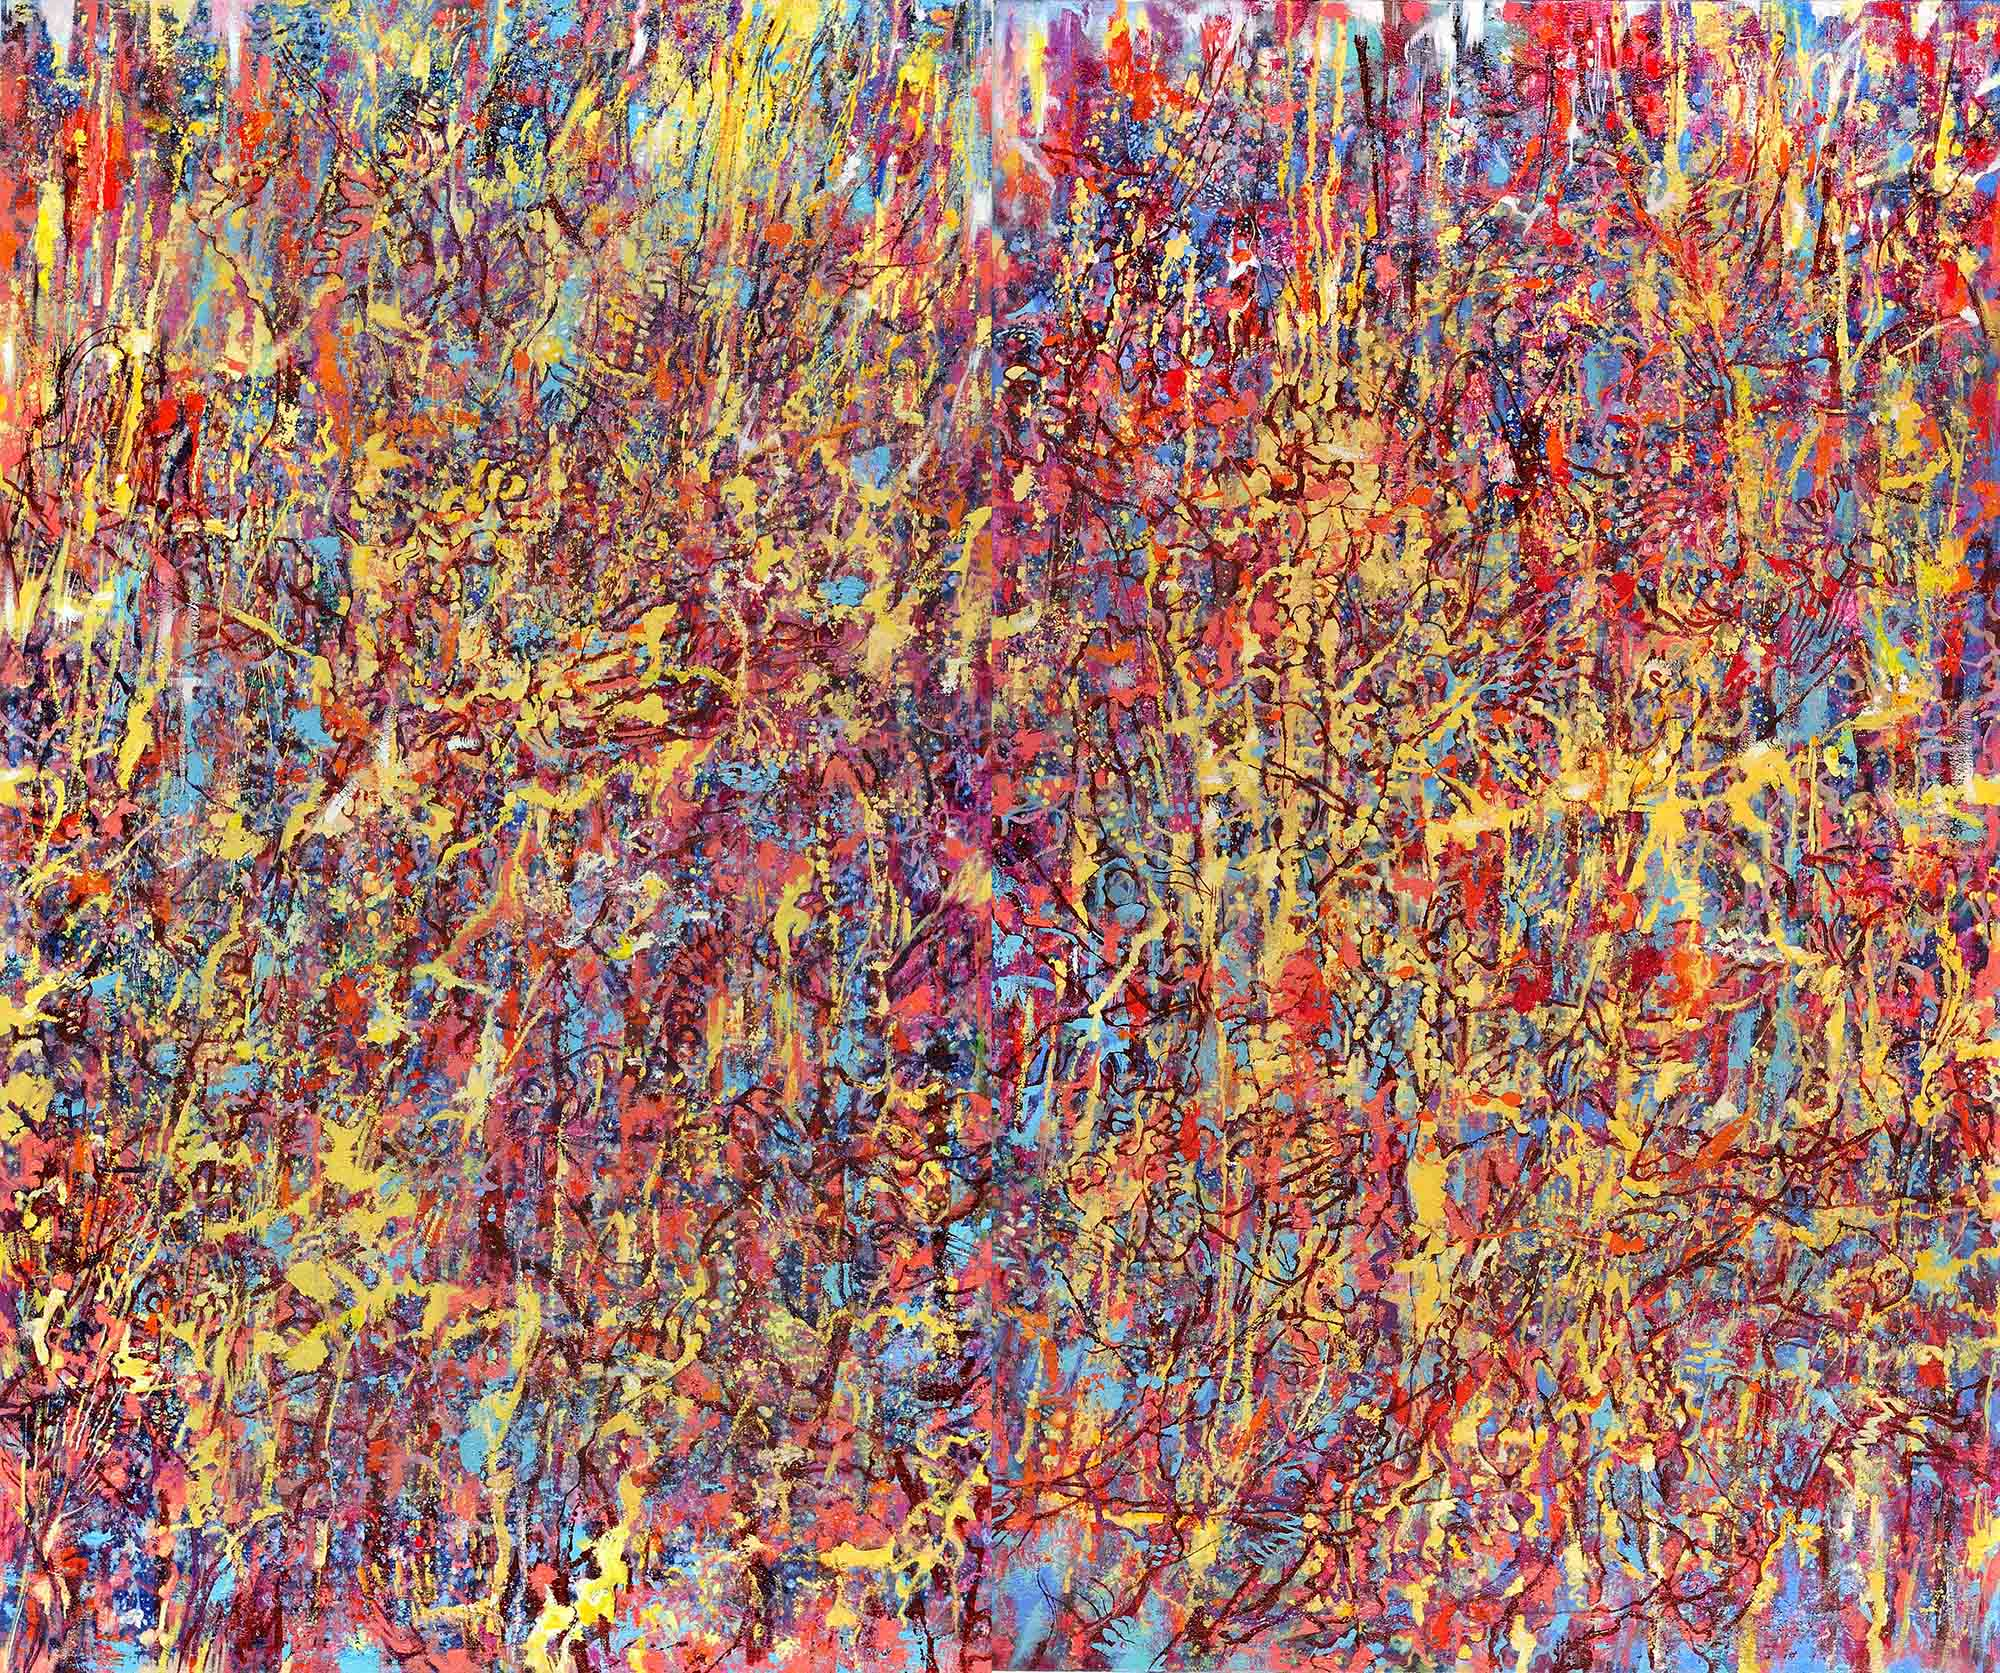 Yau Bee Ling - New Blossom (2019) Combined Oil and sand medium on canvas; 152cm x 183cm (Diptych) right